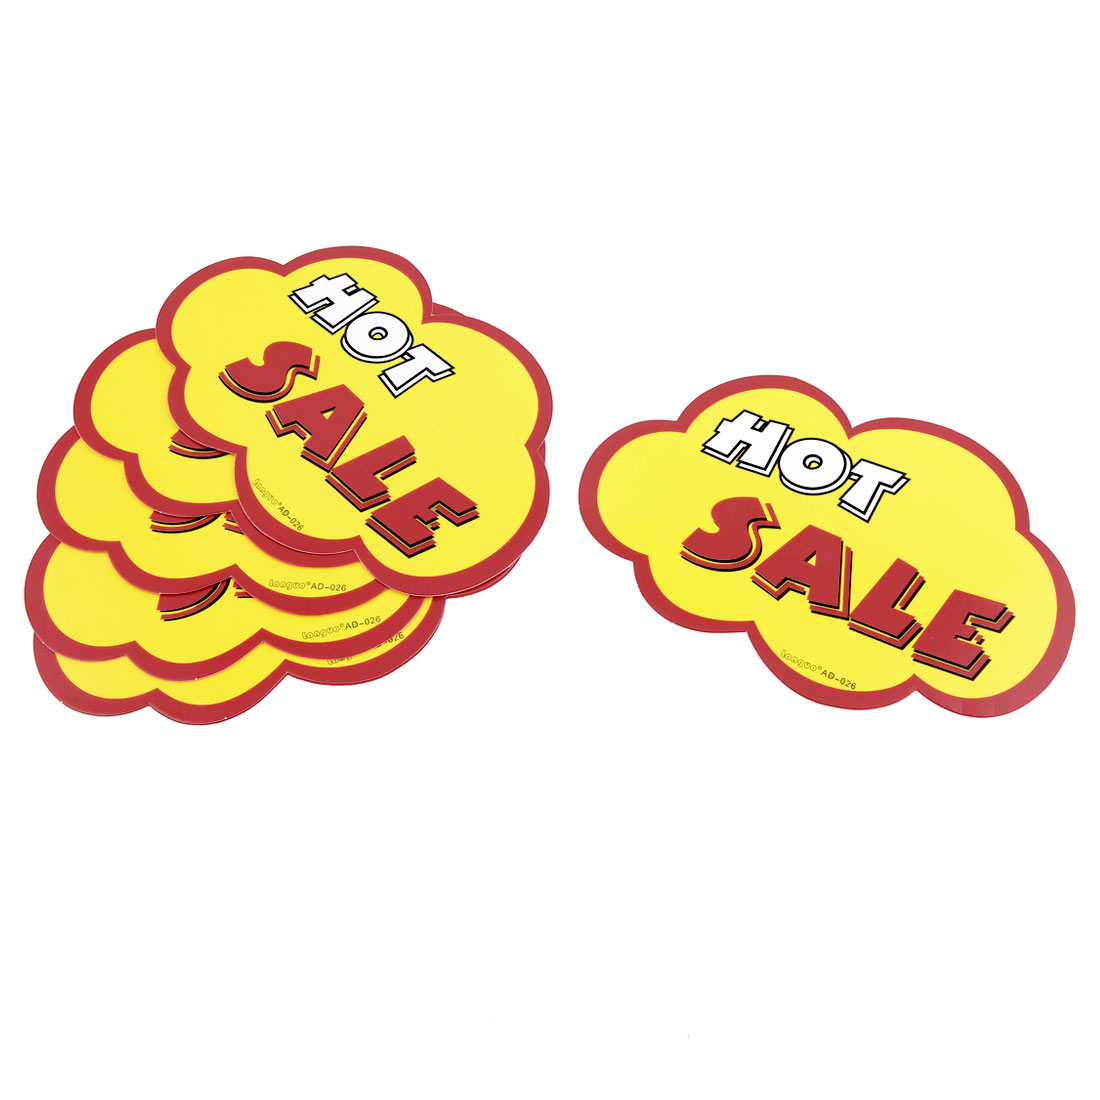 "10pcs ""HOT SALE"" Pattern Shop Store Pop Price Tags Signs Yellow Red White"